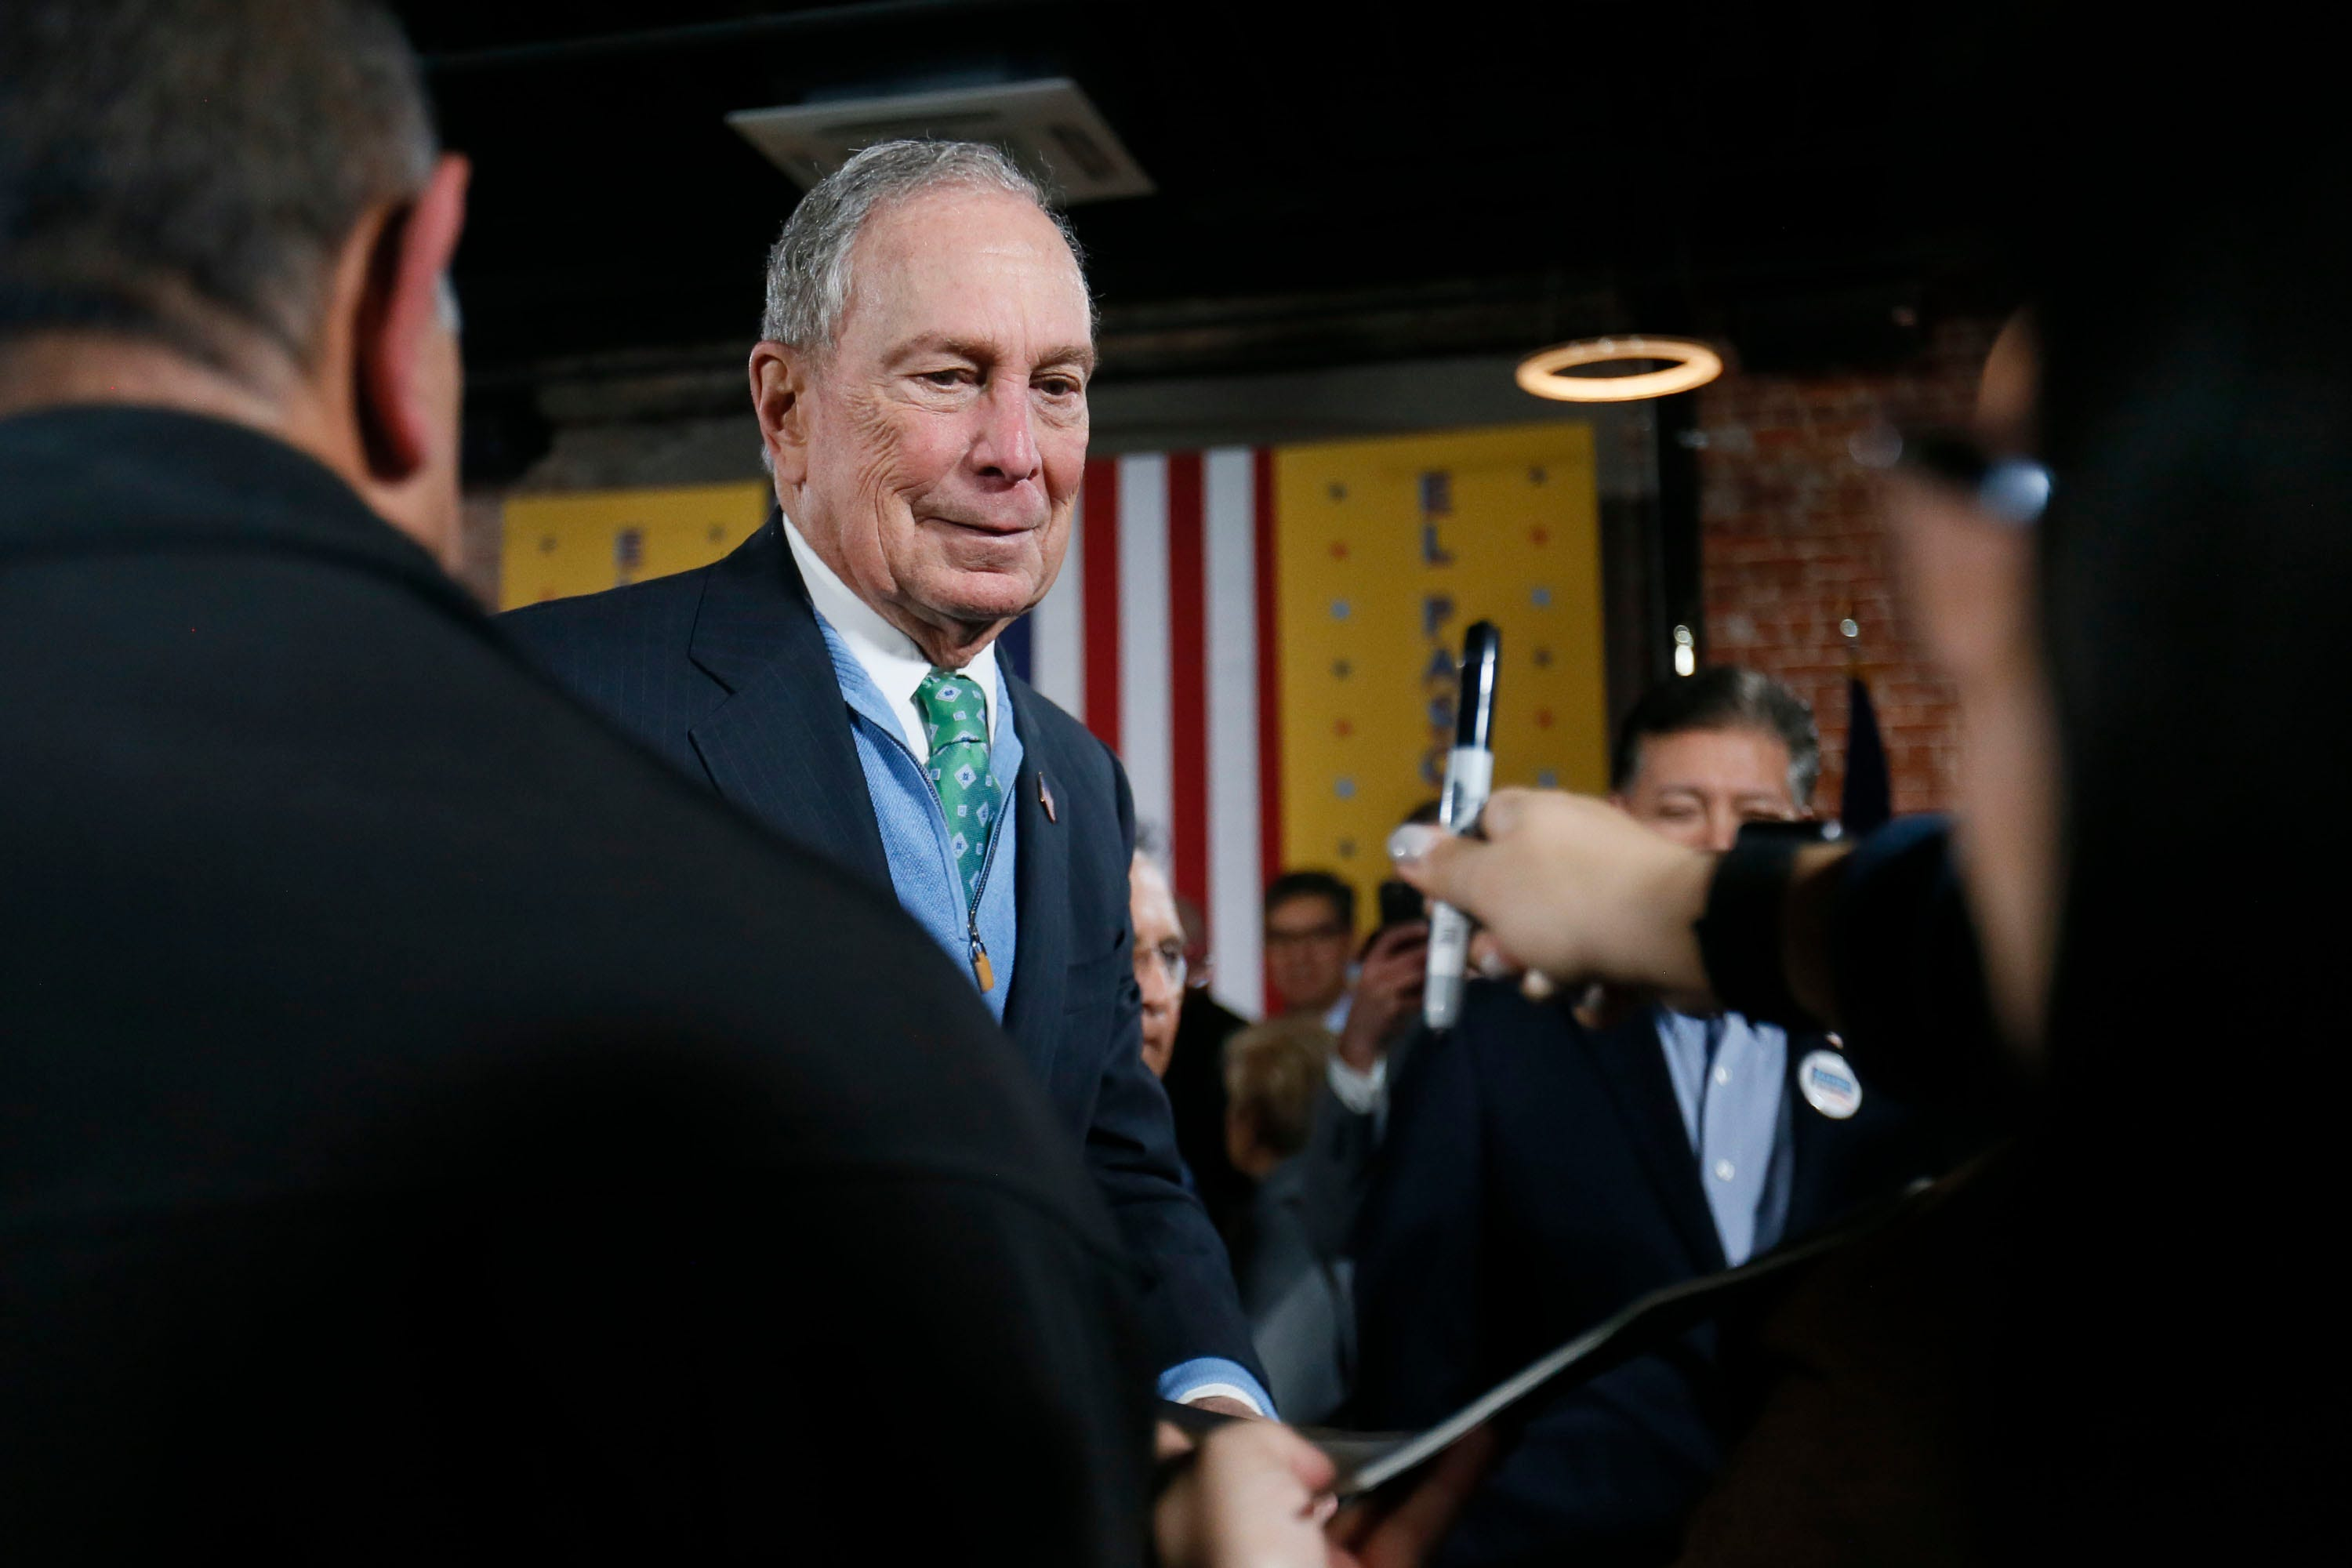 List of Michael Bloomberg 2020 presidential campaign endorsements